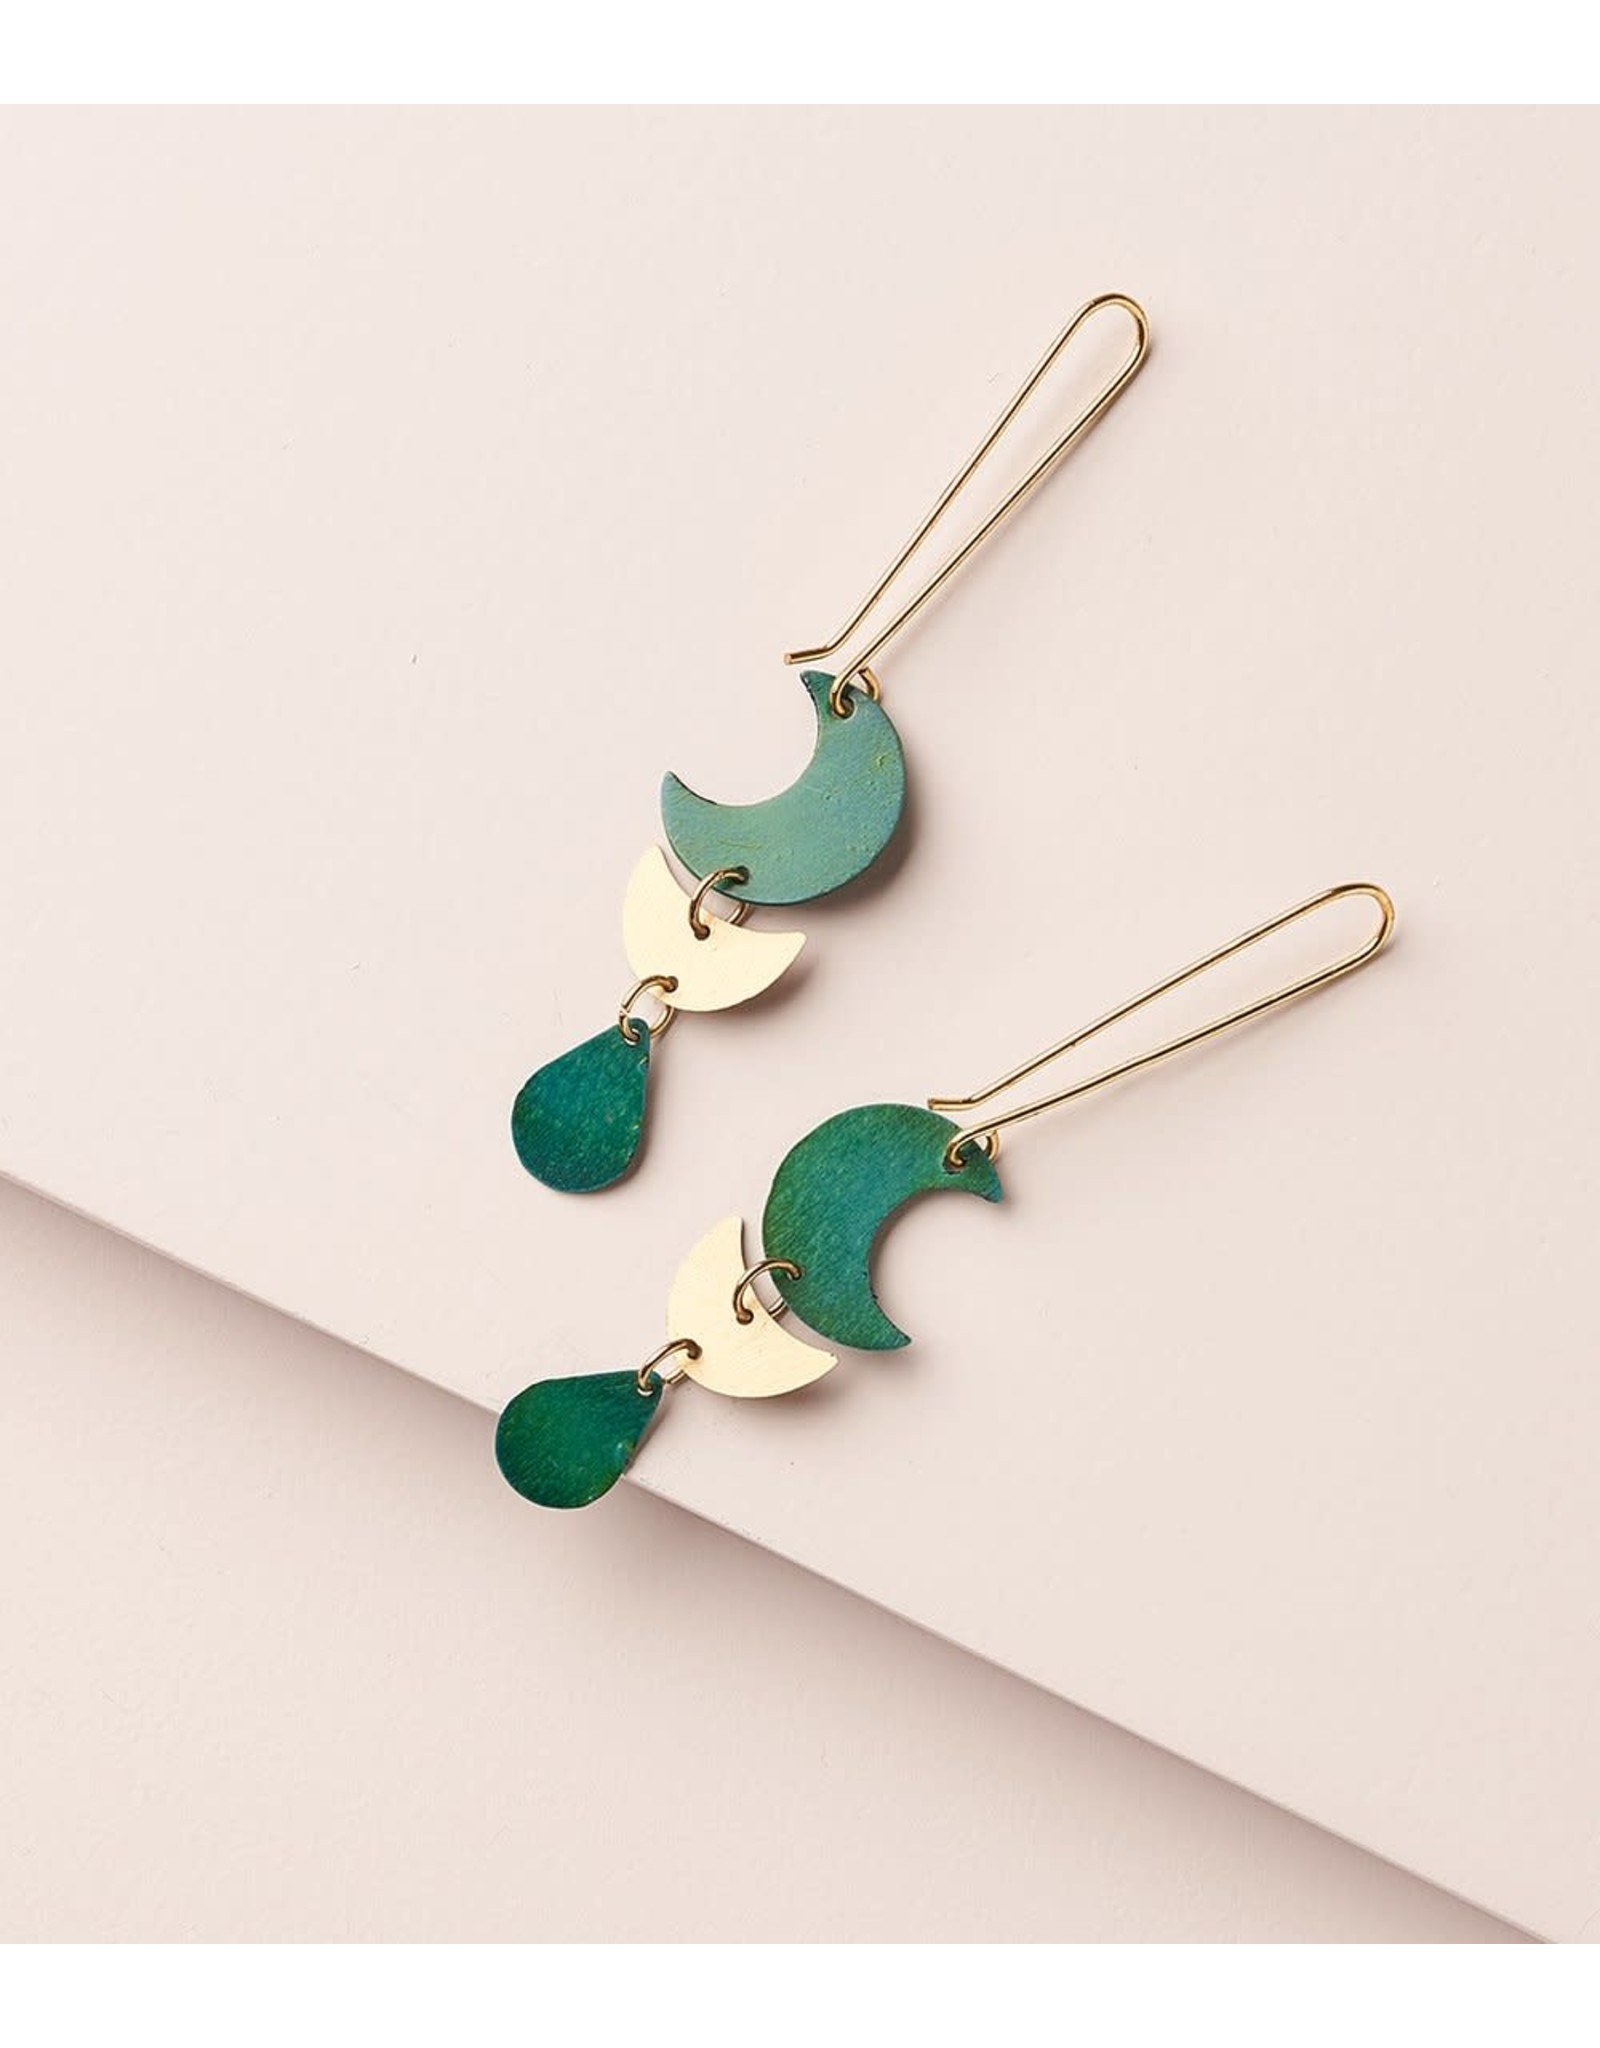 Rajani Earrings, Teal Drop